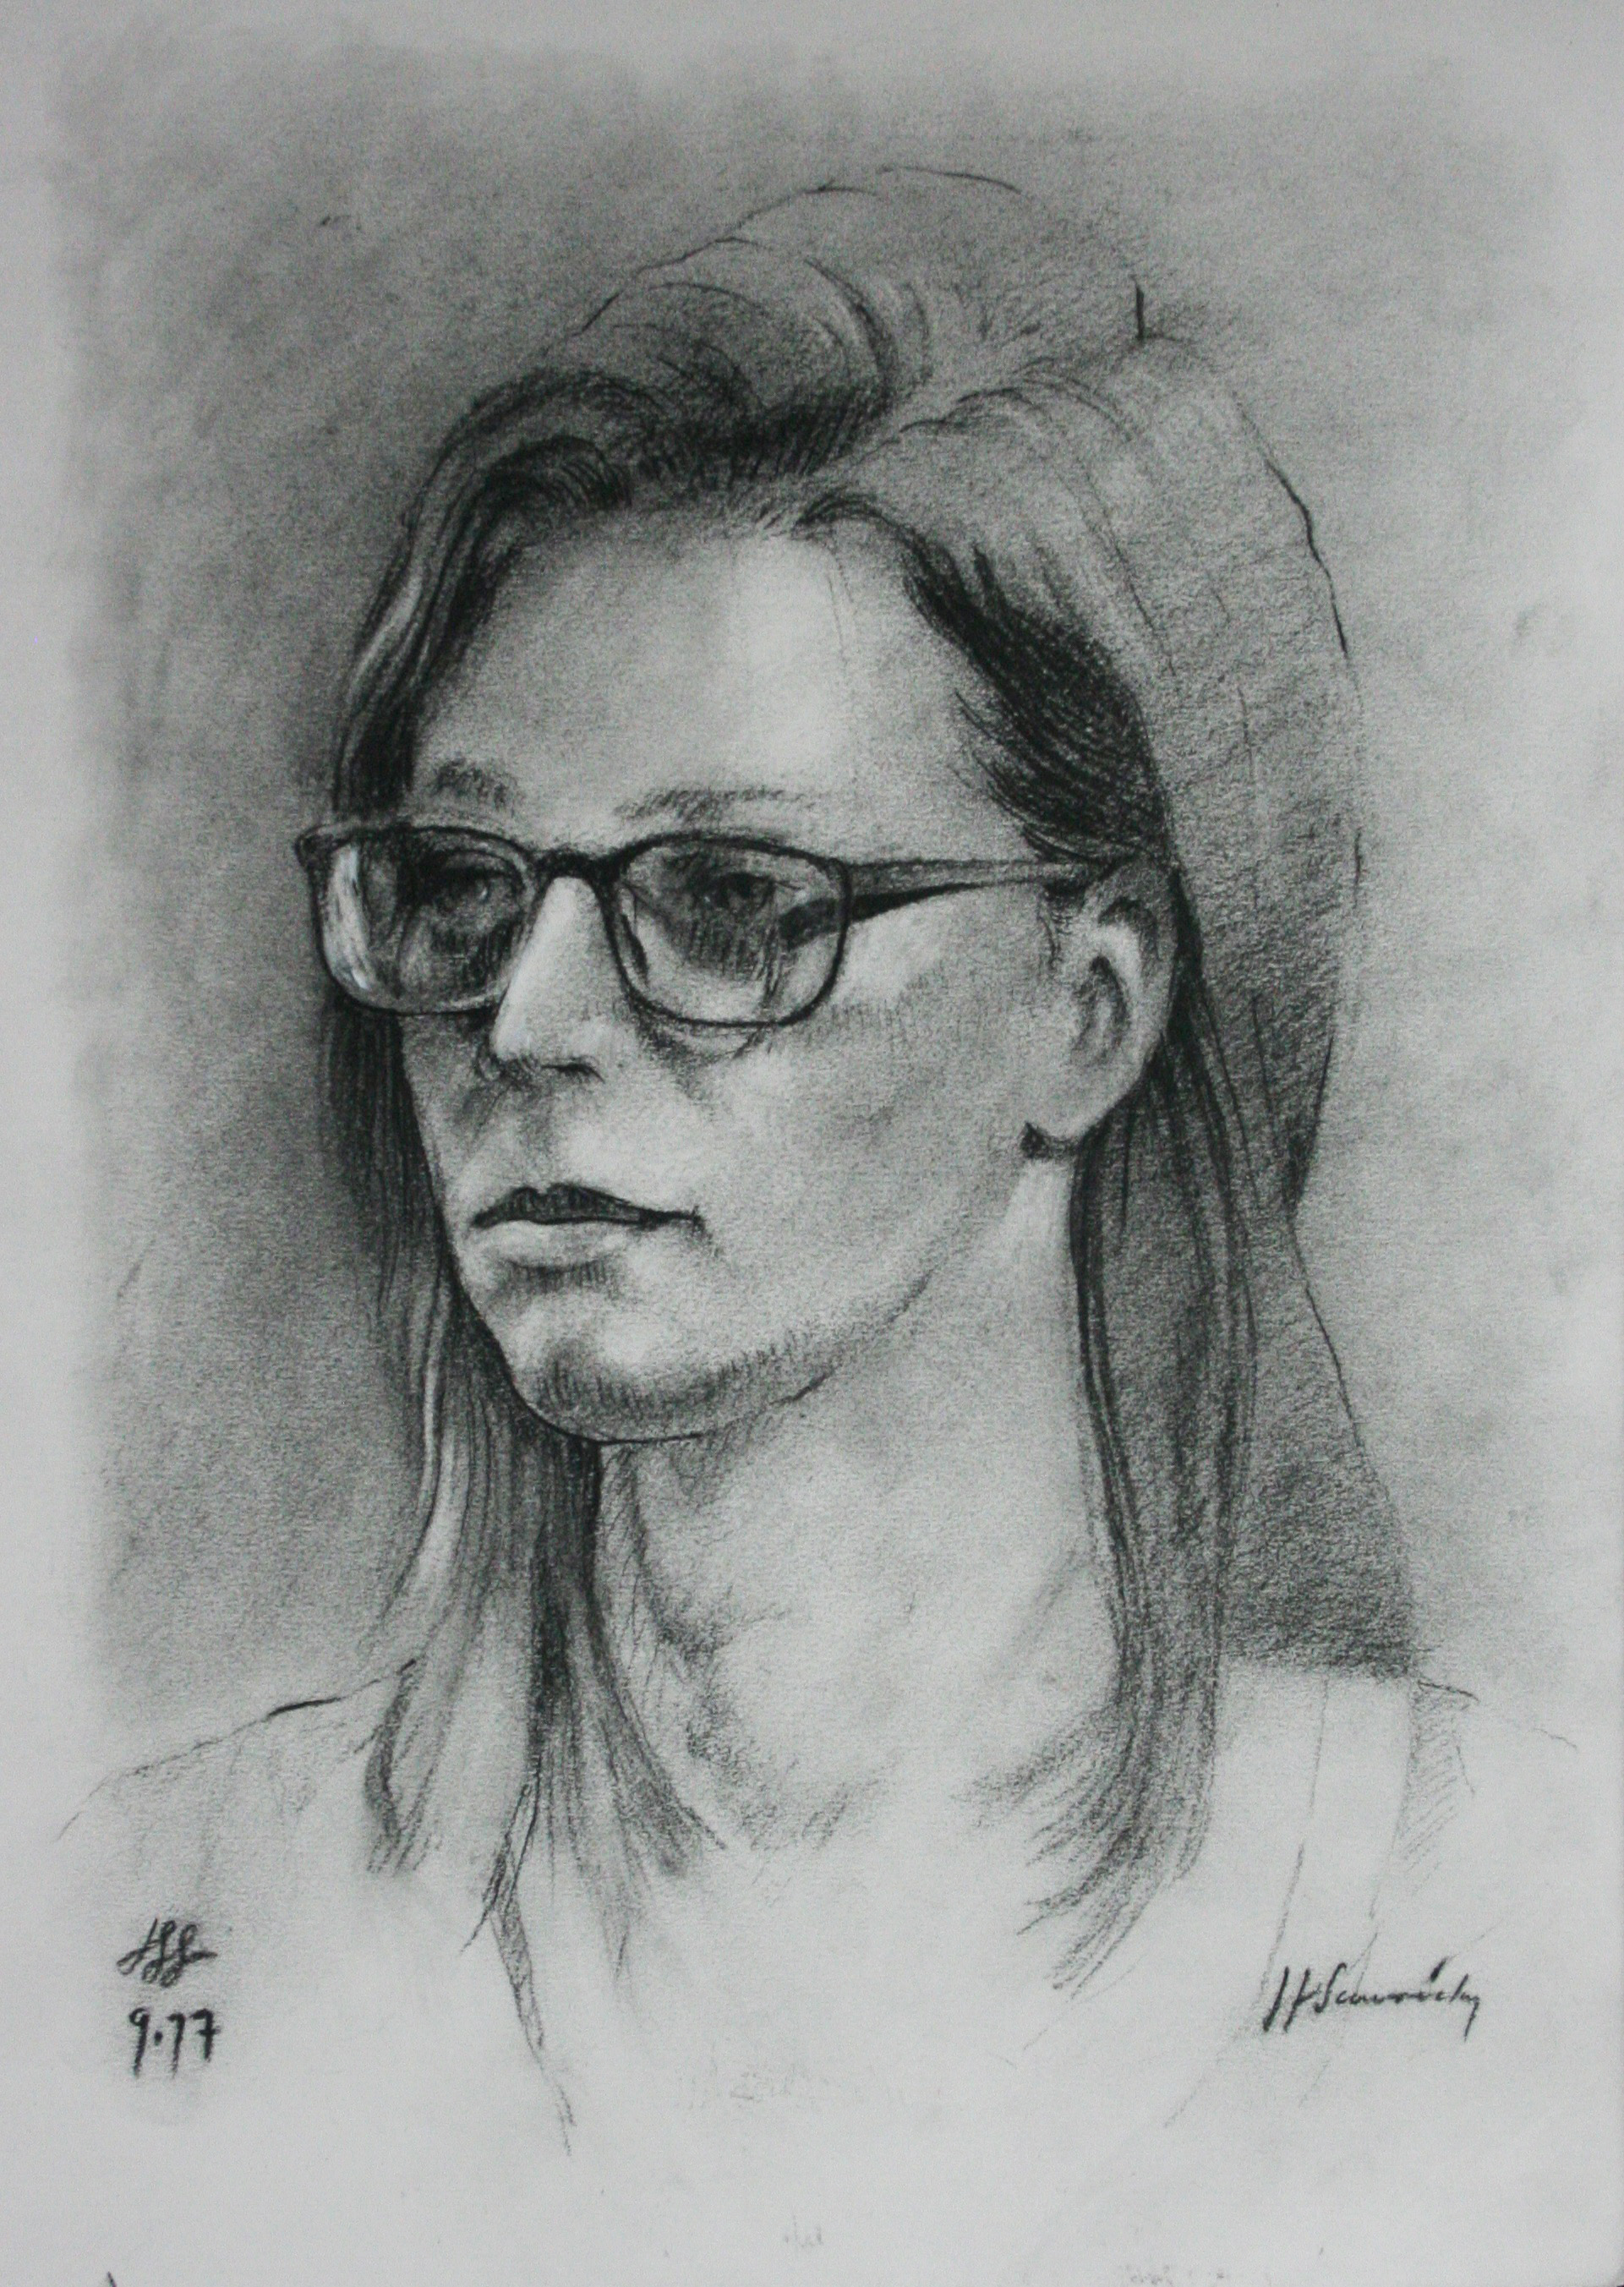 John Scavnicky did this 3-hour drawing.